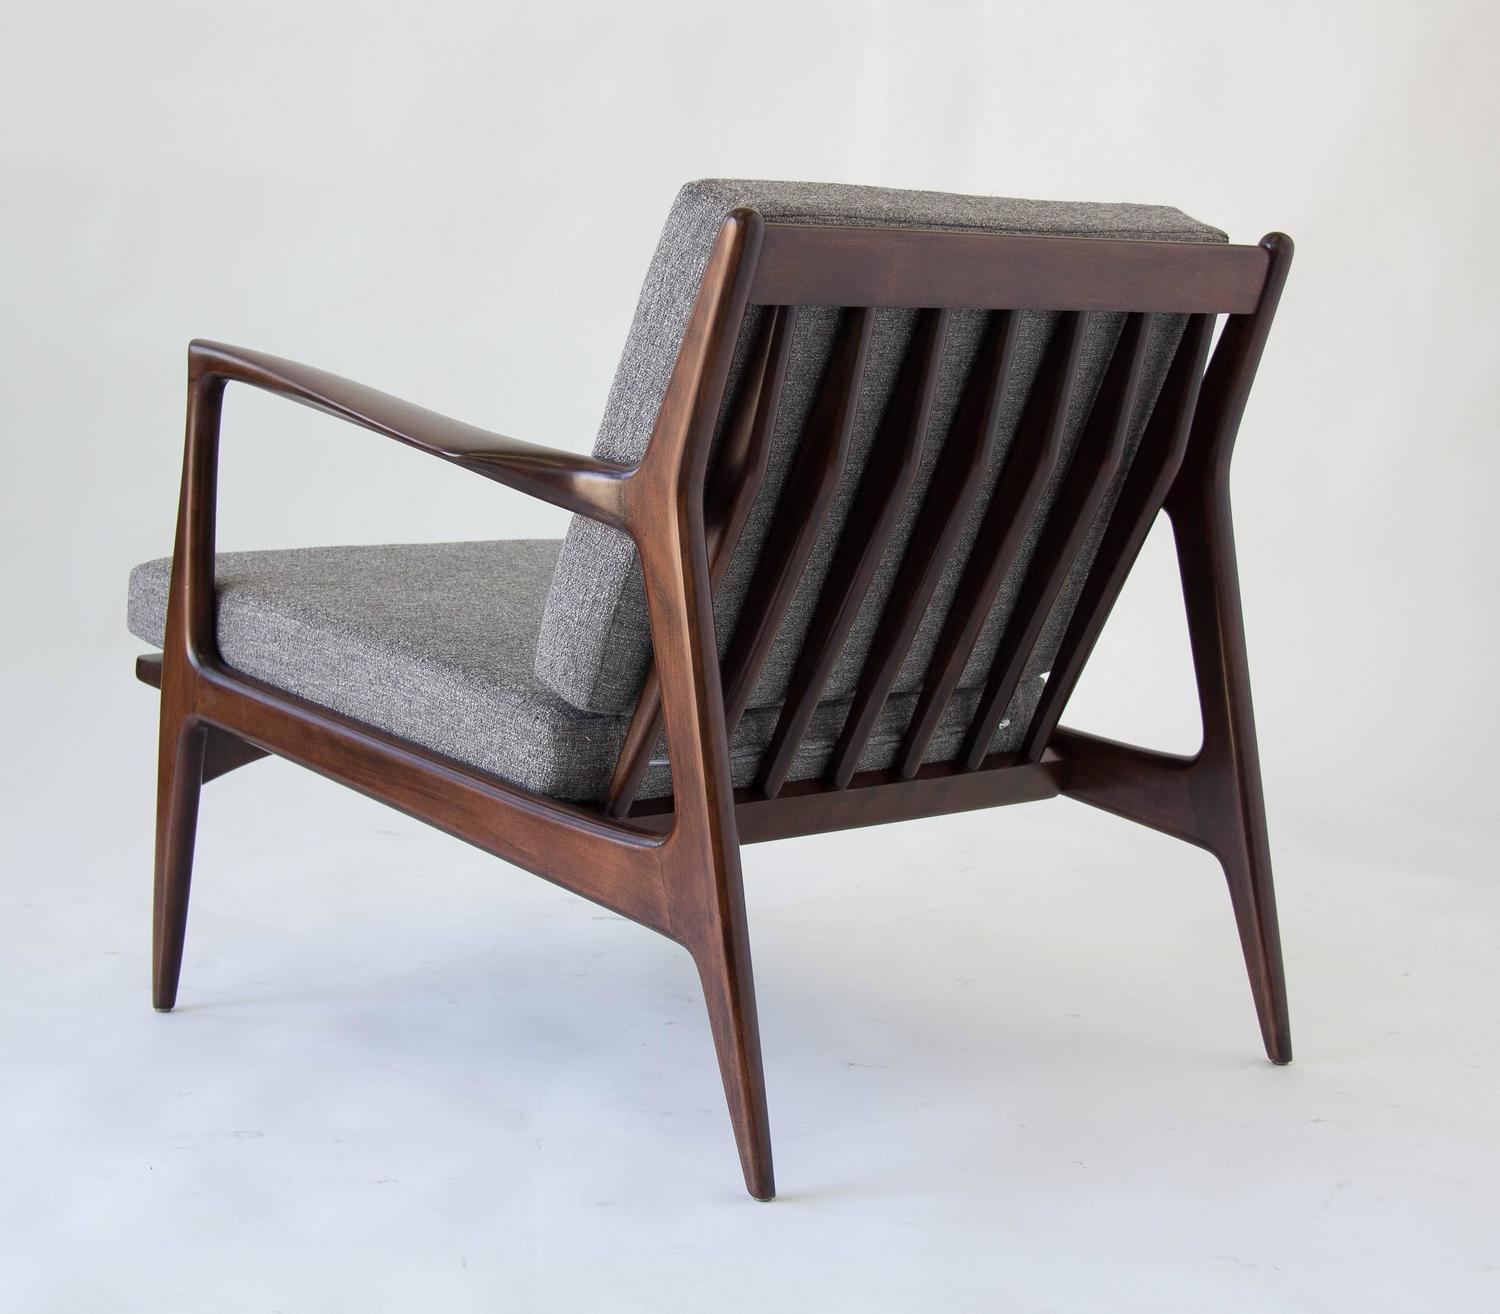 Lounge Chair By Ib Kofod Larsen For Selig For Sale At 1stdibs